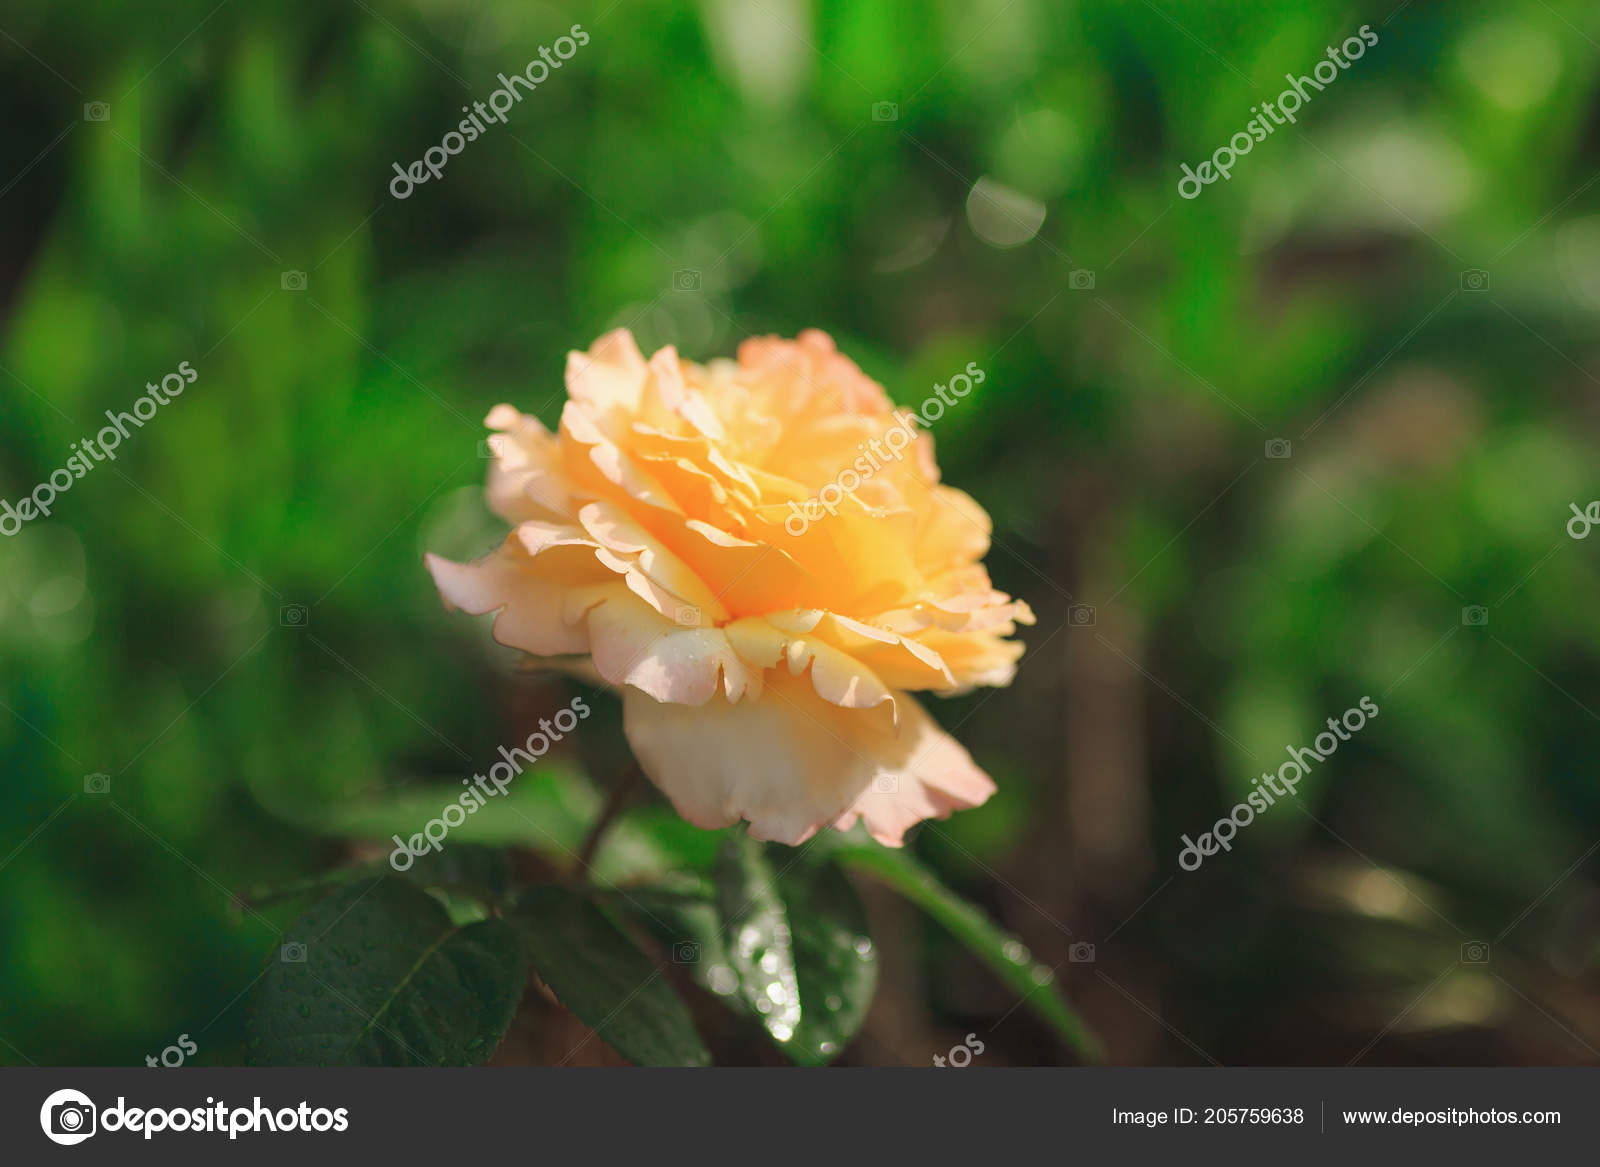 Blooming Yellow Rose Flower Photographie Batechenkofff C 205759638